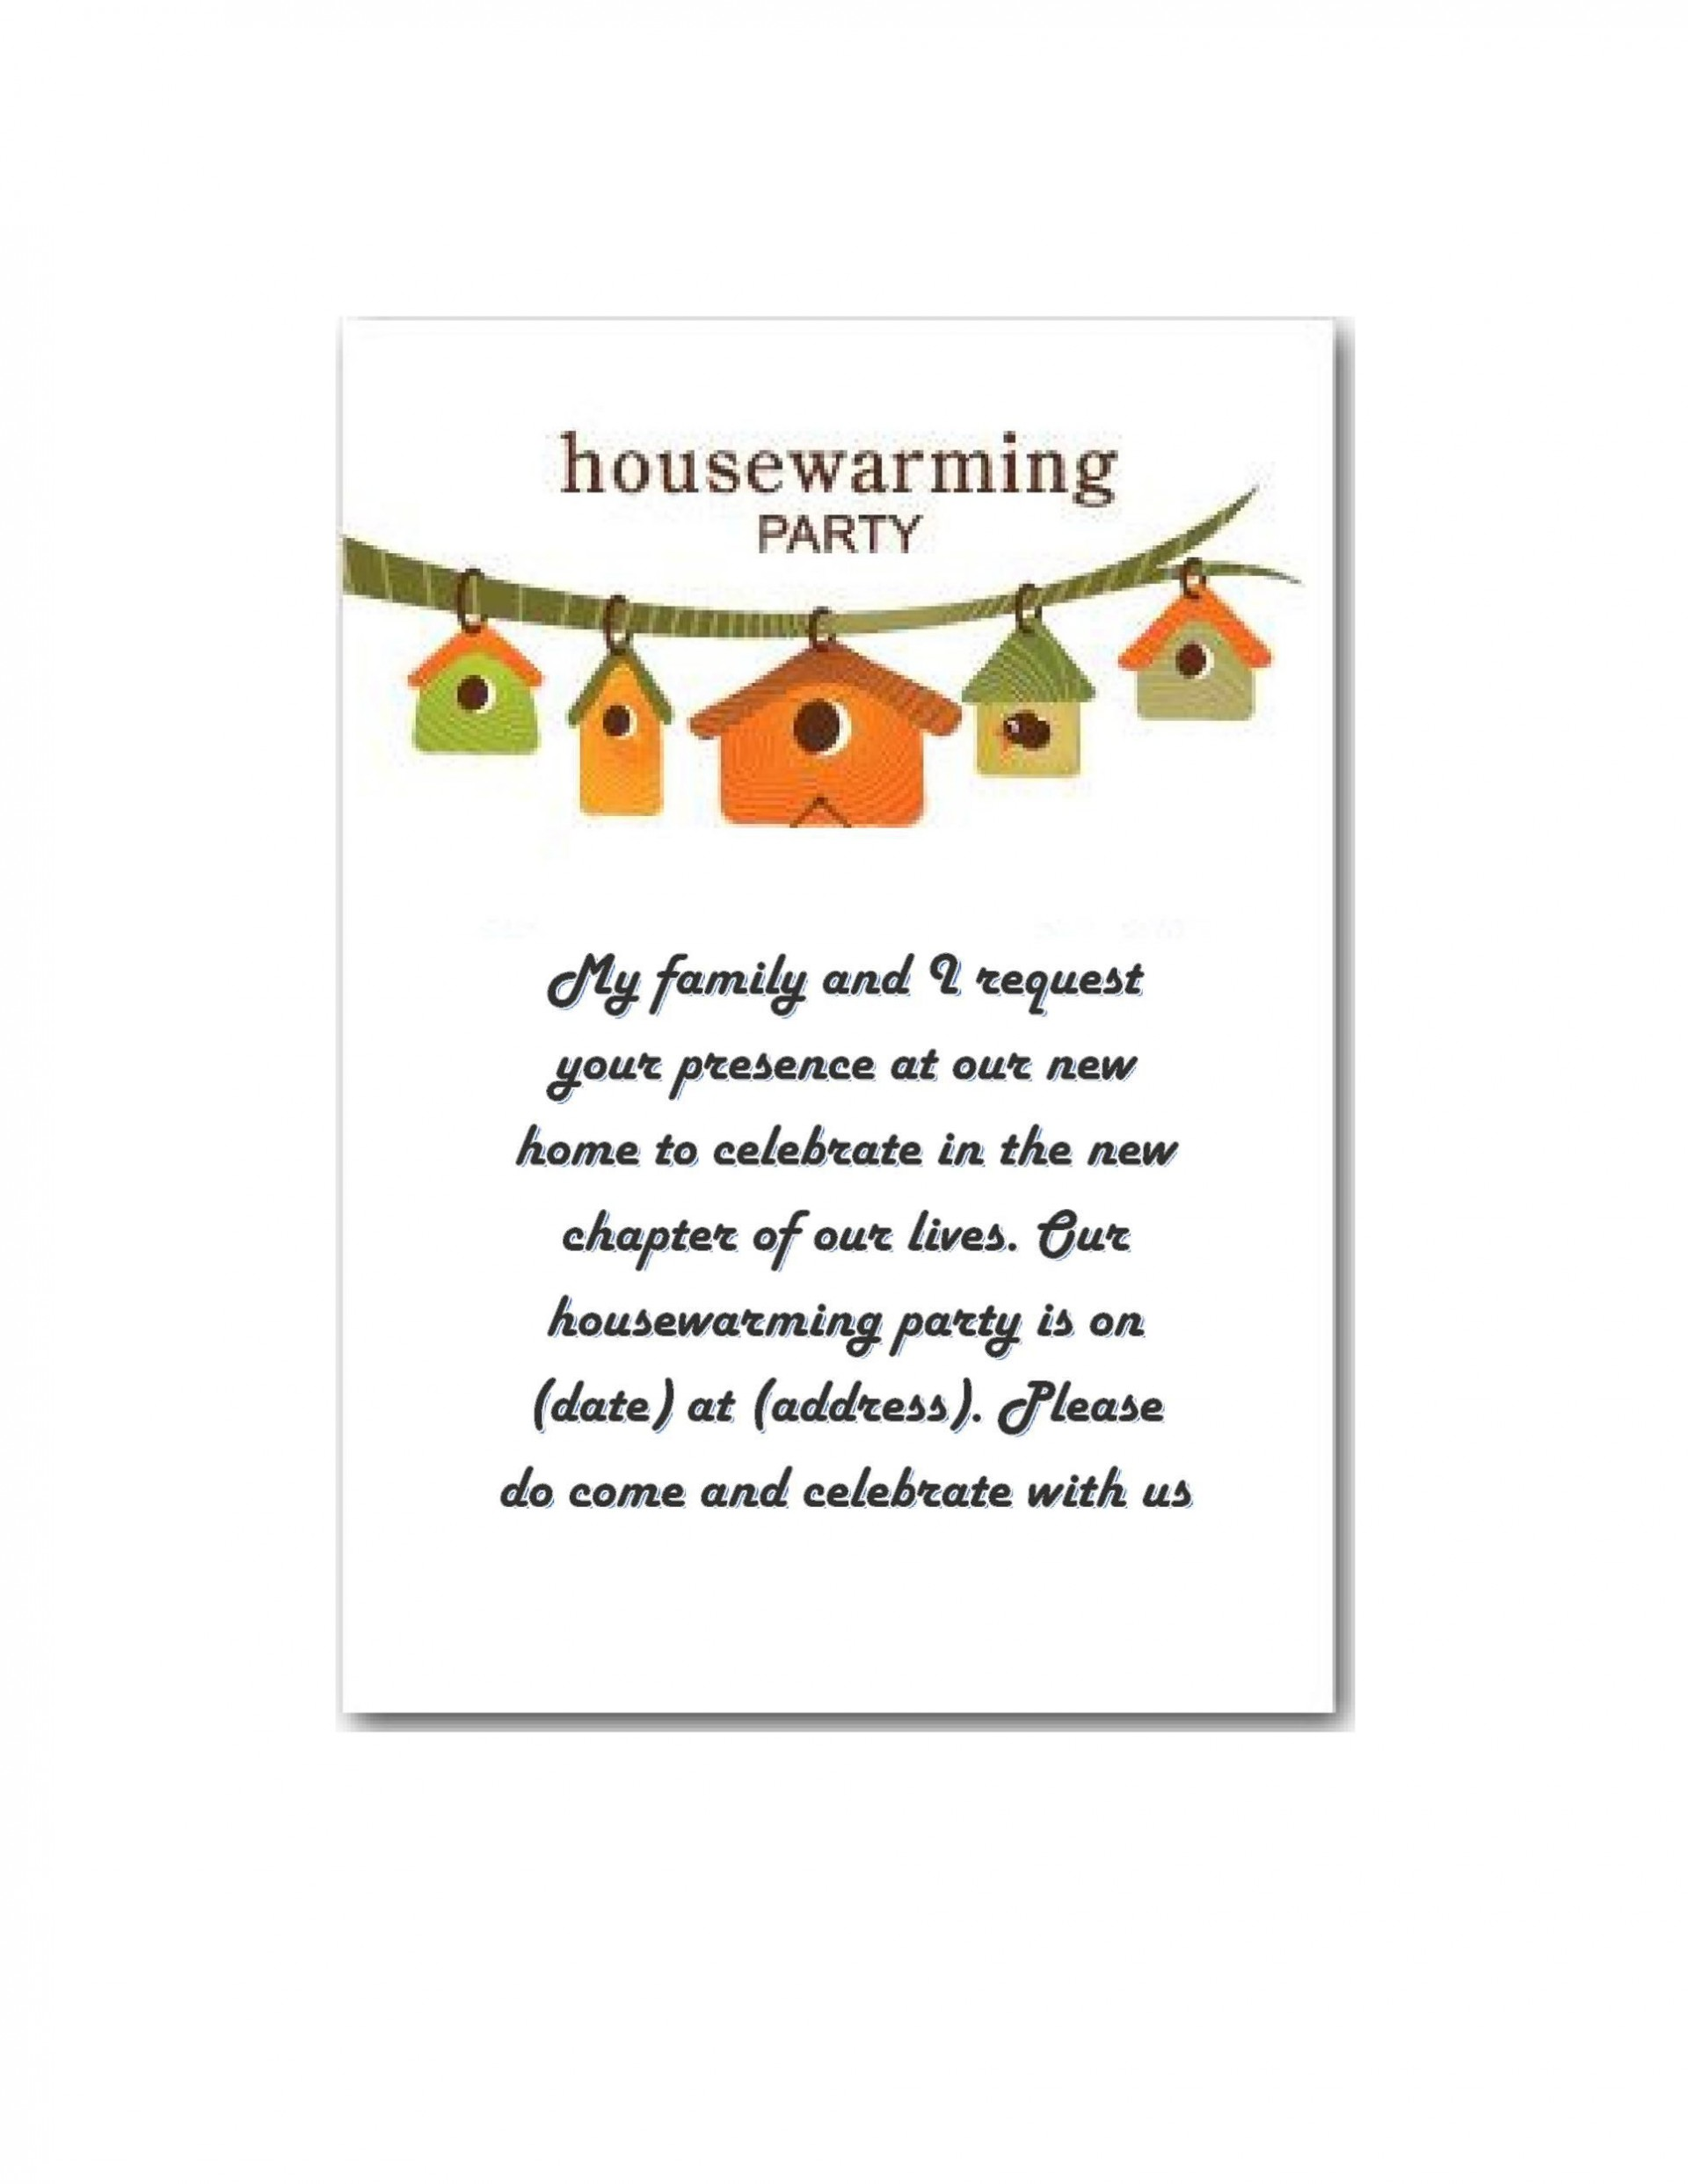 007 Frightening Housewarming Party Invitation Template Sample  Templates Free Download Card1920